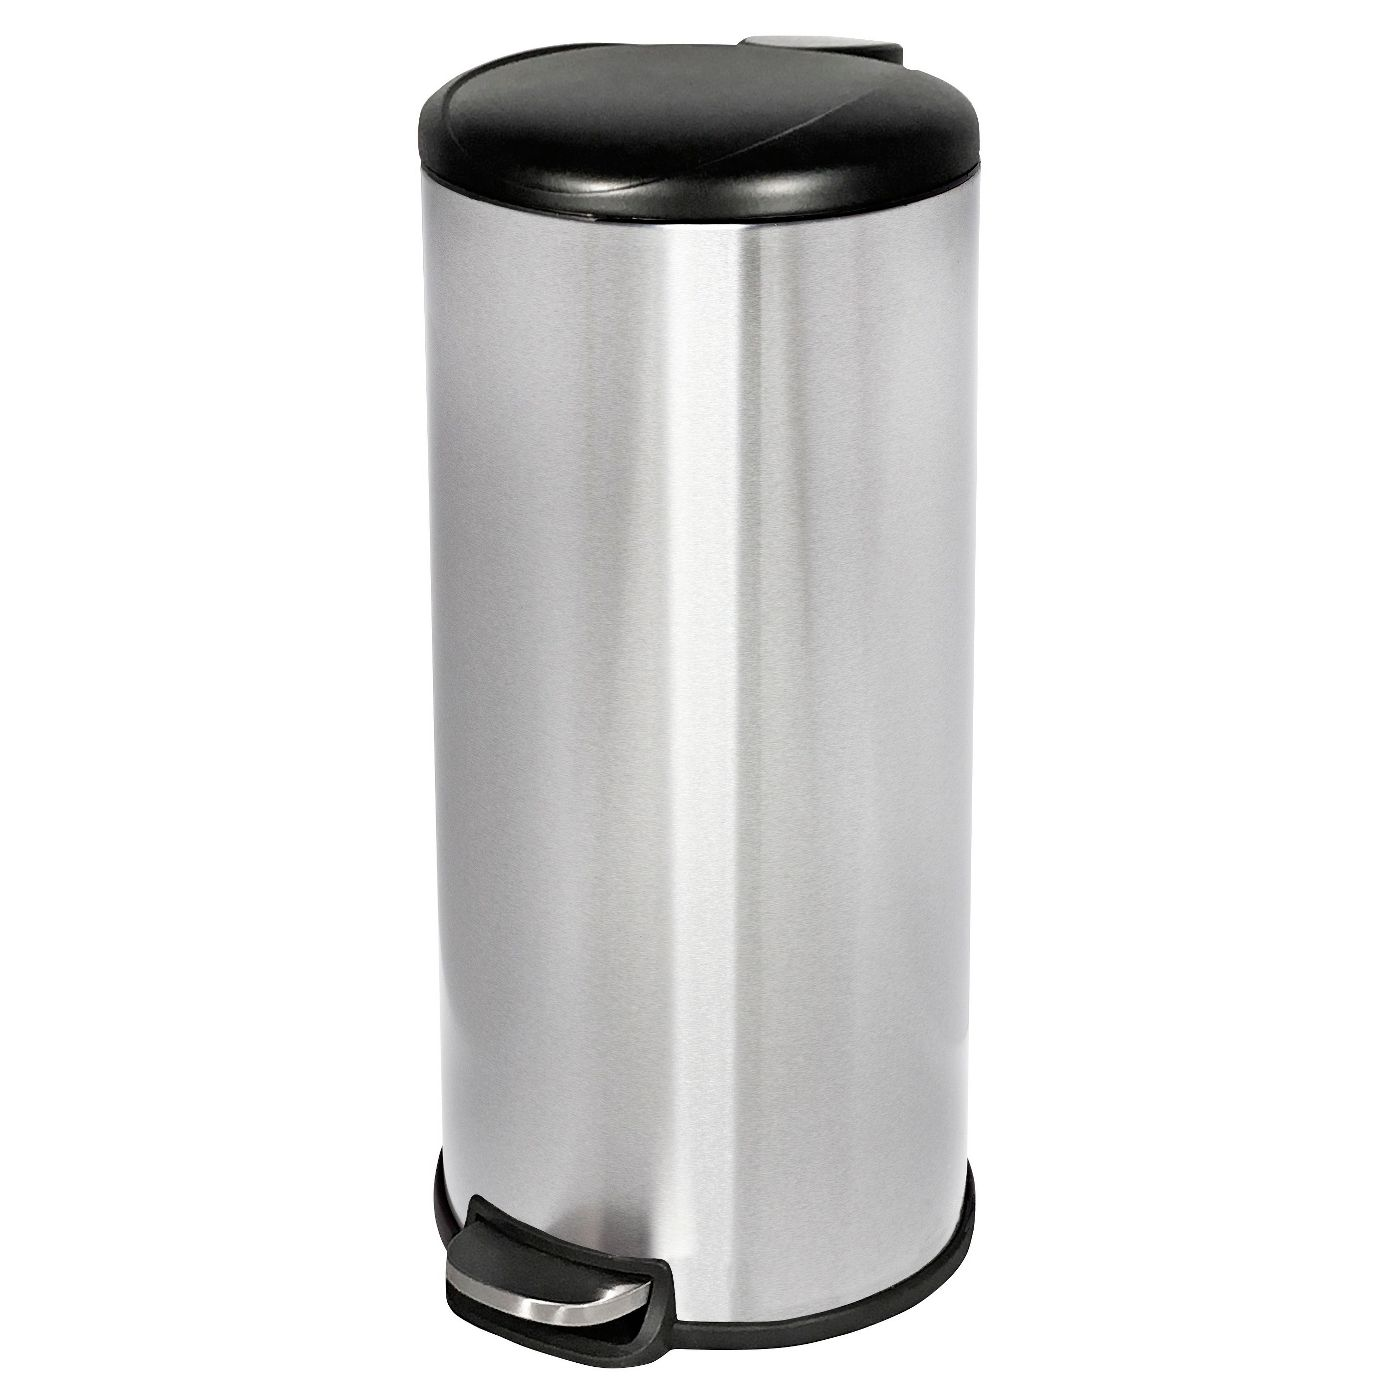 30 ltr Step-On Trash Can Stainless Steel - Room Essentials™ - image 1 of 1